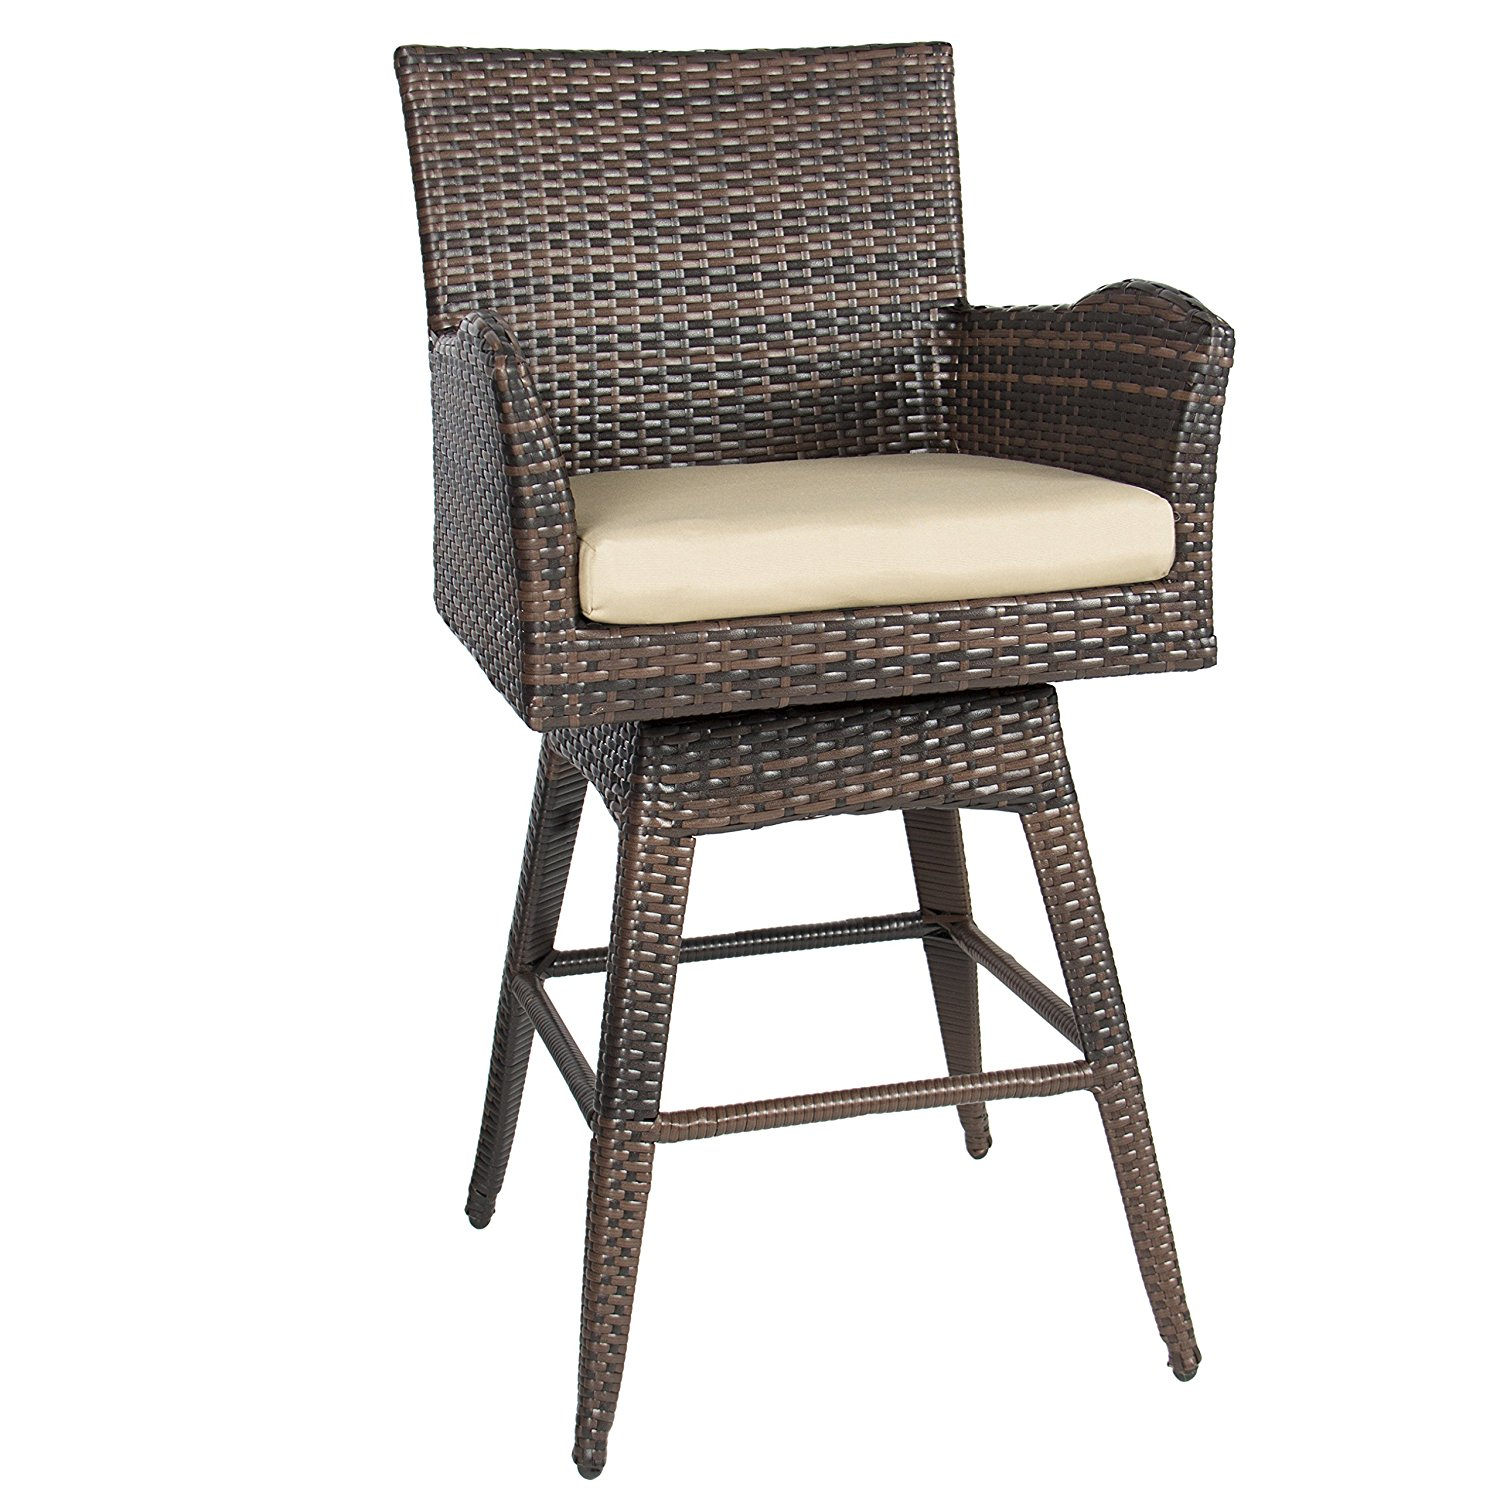 outdoor bar stools best choice products outdoor patio furniture all-weather brown wicker  swivel bar stool with cushion GTKVUPI